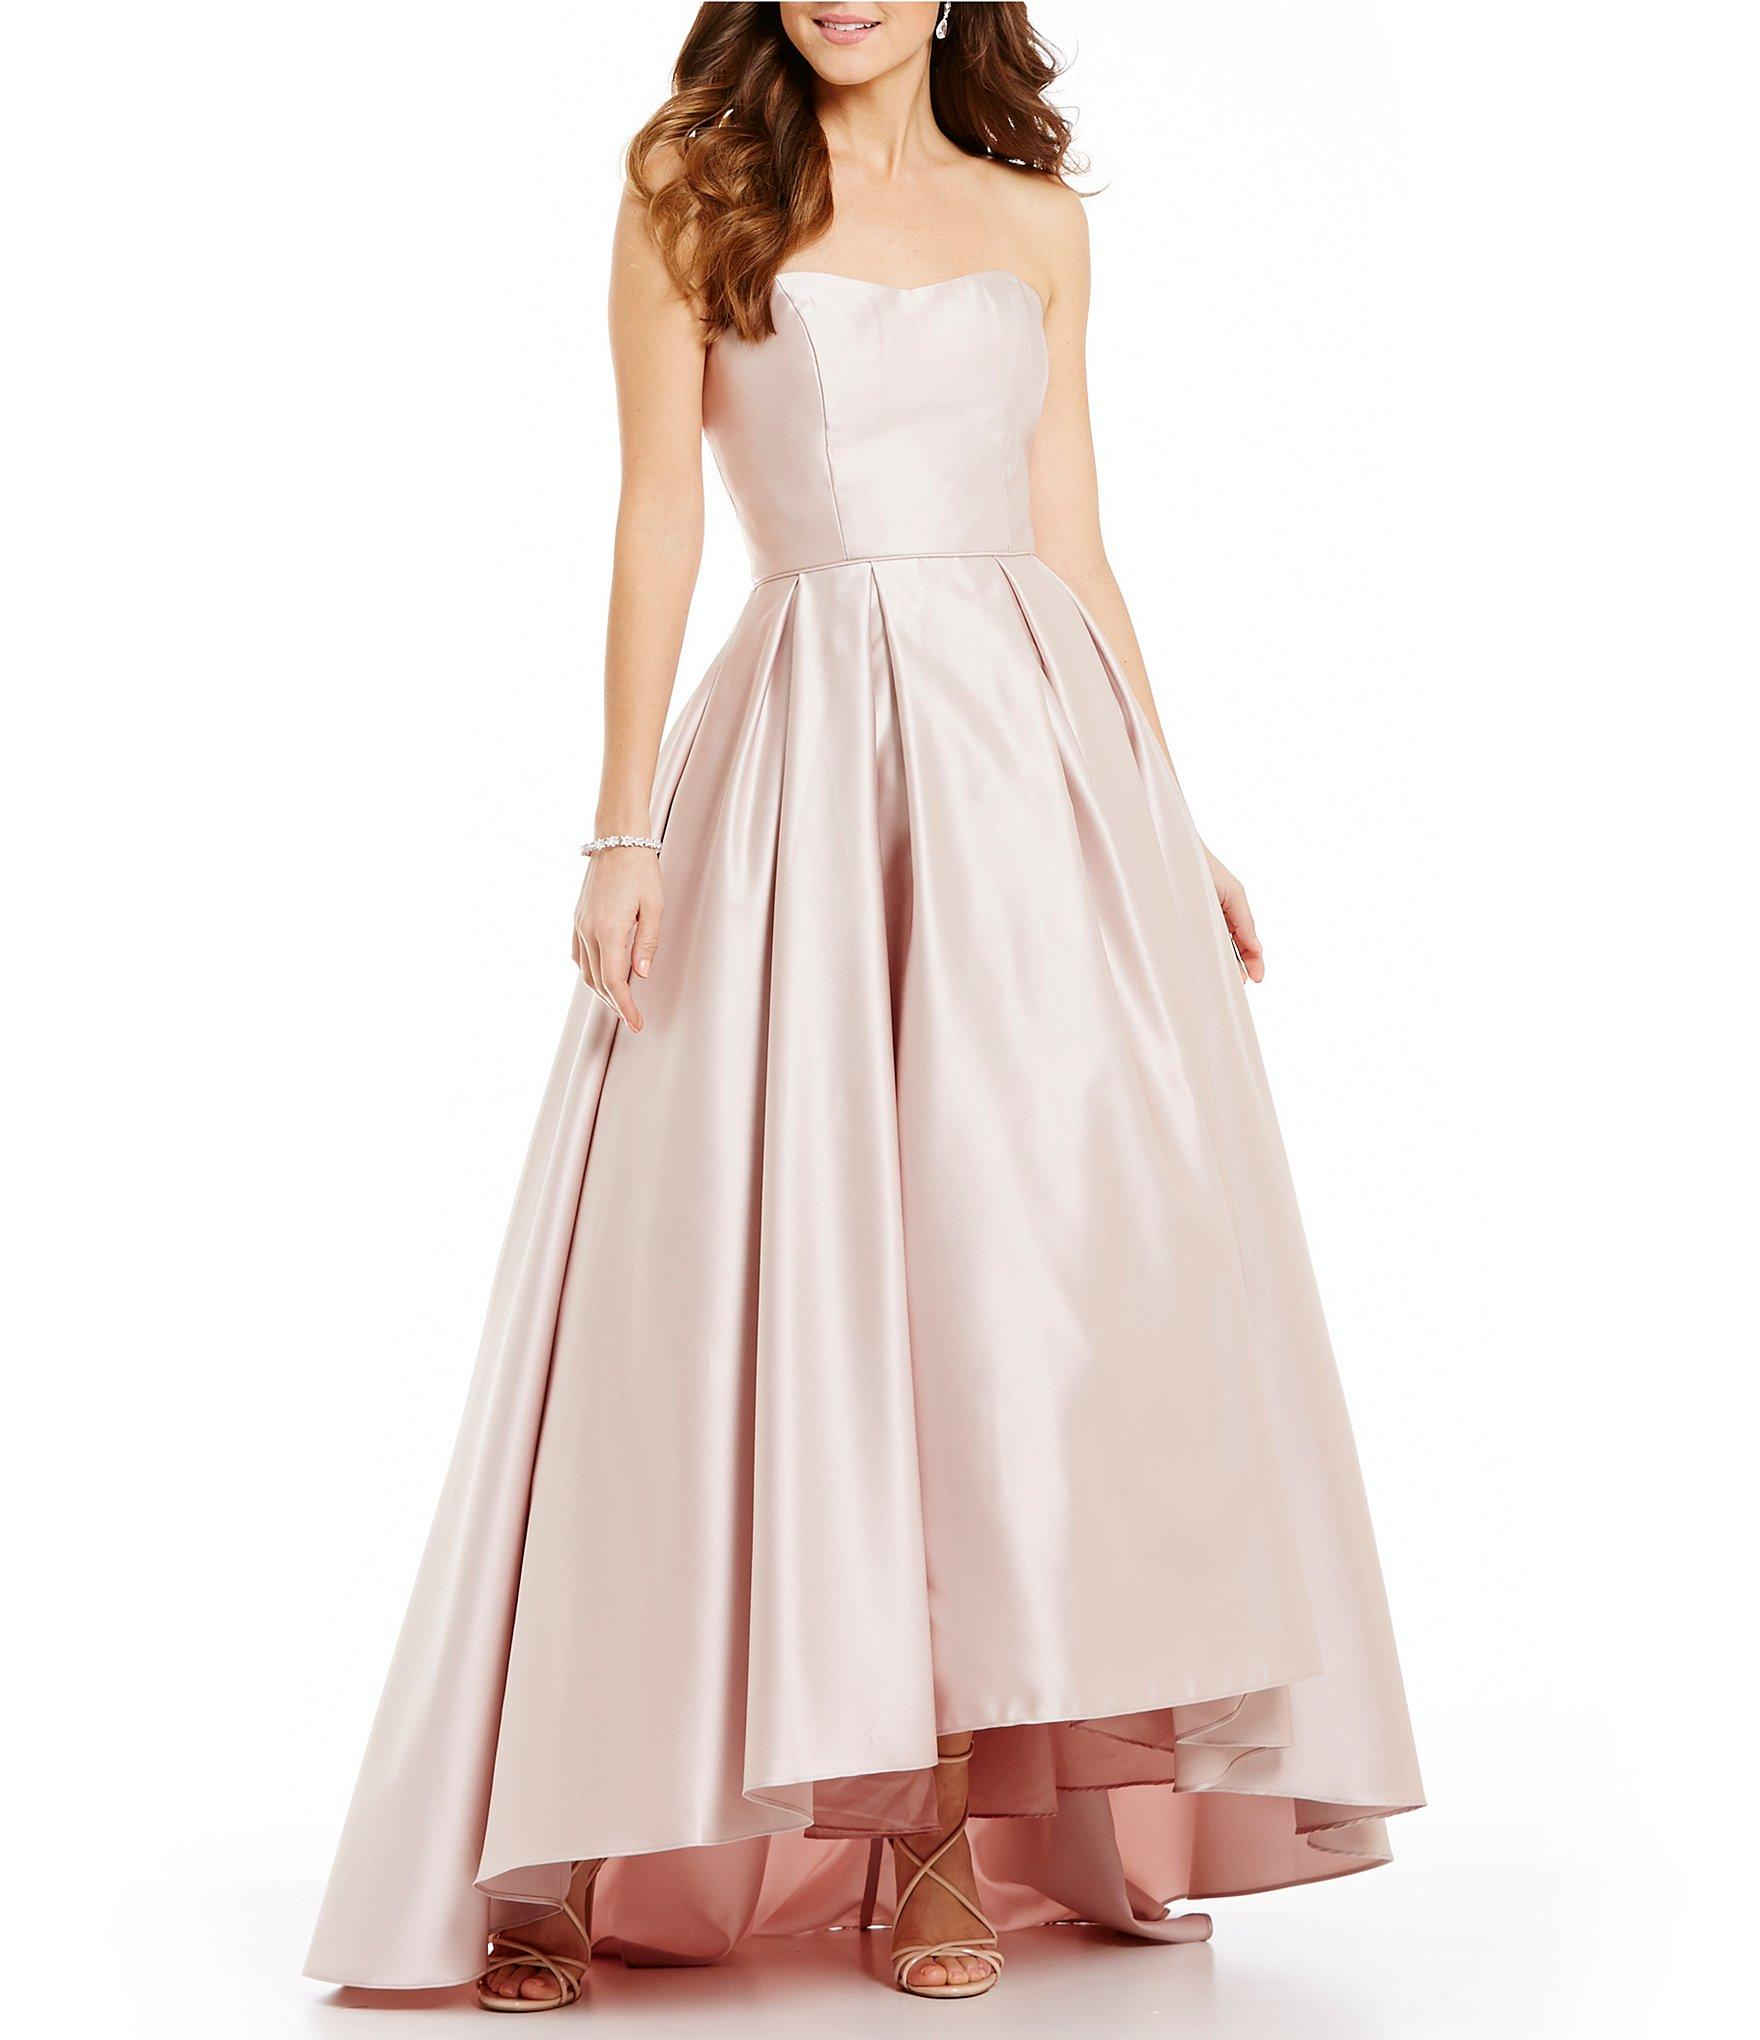 Lyst - Betsy & Adam Strapless Sweetheart Hi-low Ball Gown in Natural